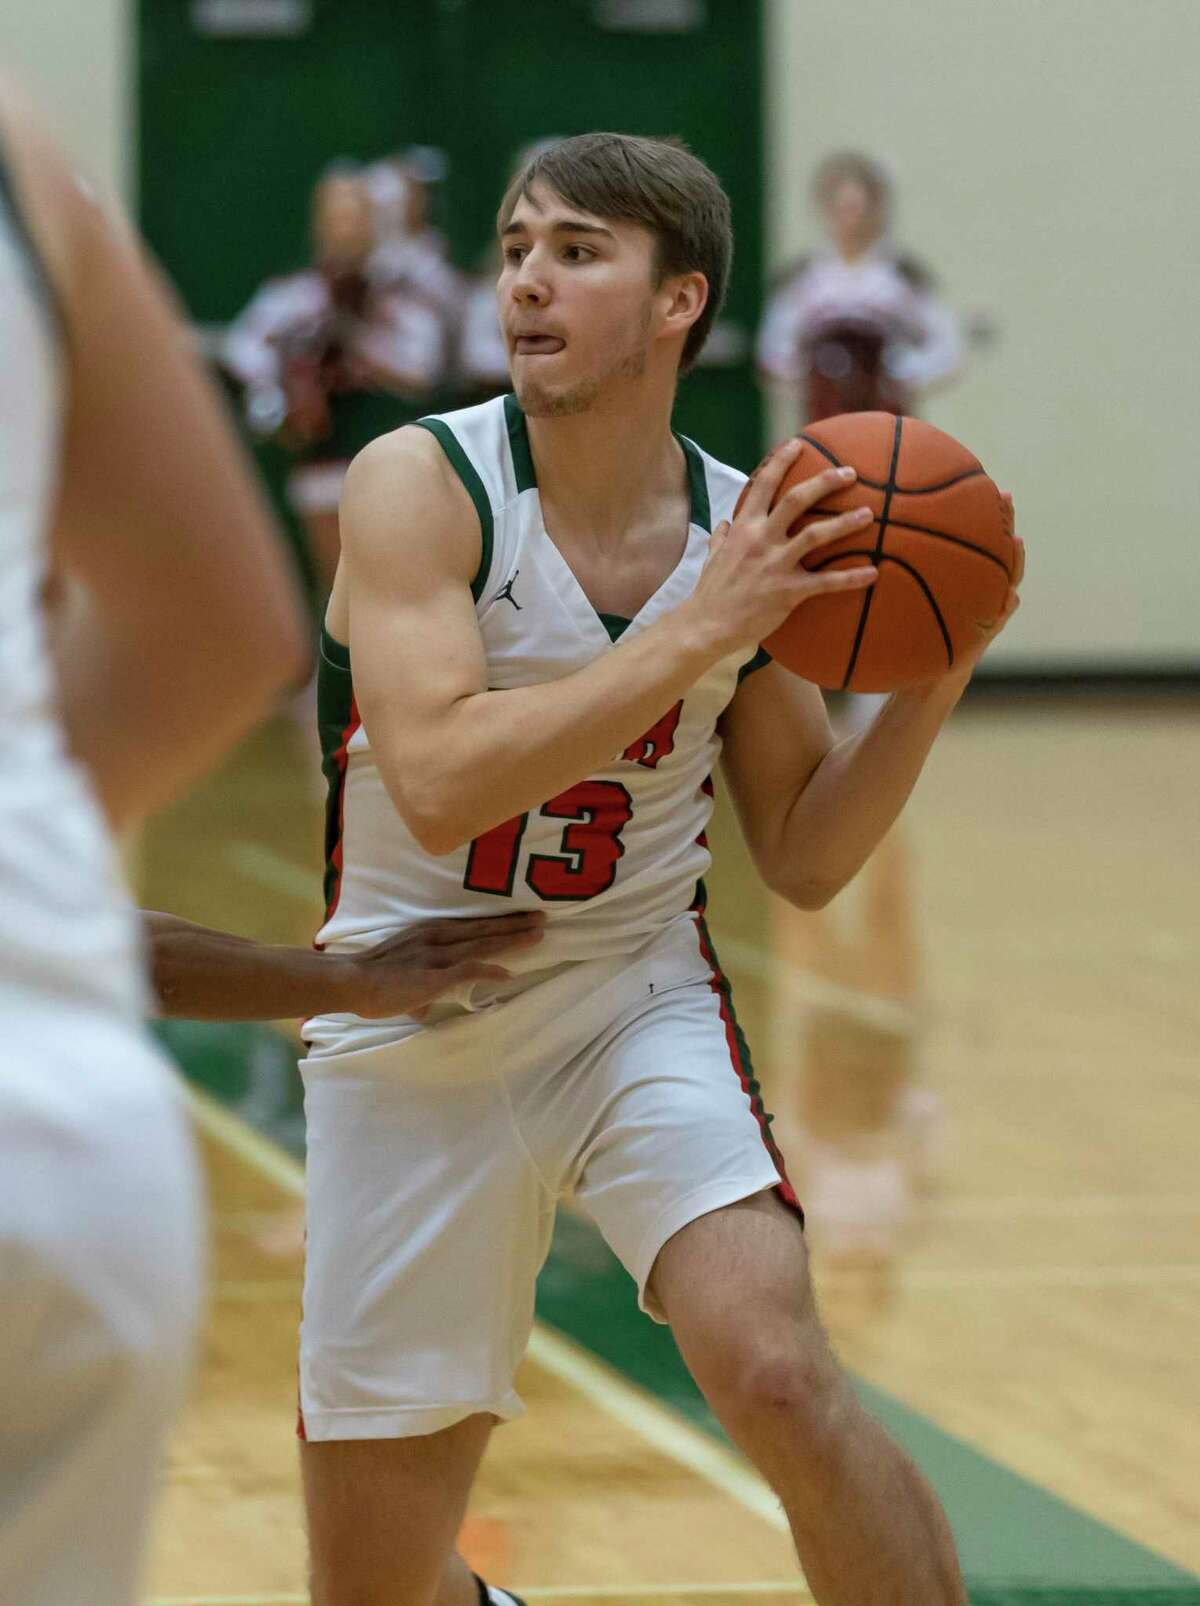 Woodlands guard Tyler Hveem (13) looks for an opening to pass the ball during the first half in a District 15-6A boys basketball game against Klein Forest high school at The Woodlands High School in The Woodlands, Tuesday, Feb. 11, 2020.